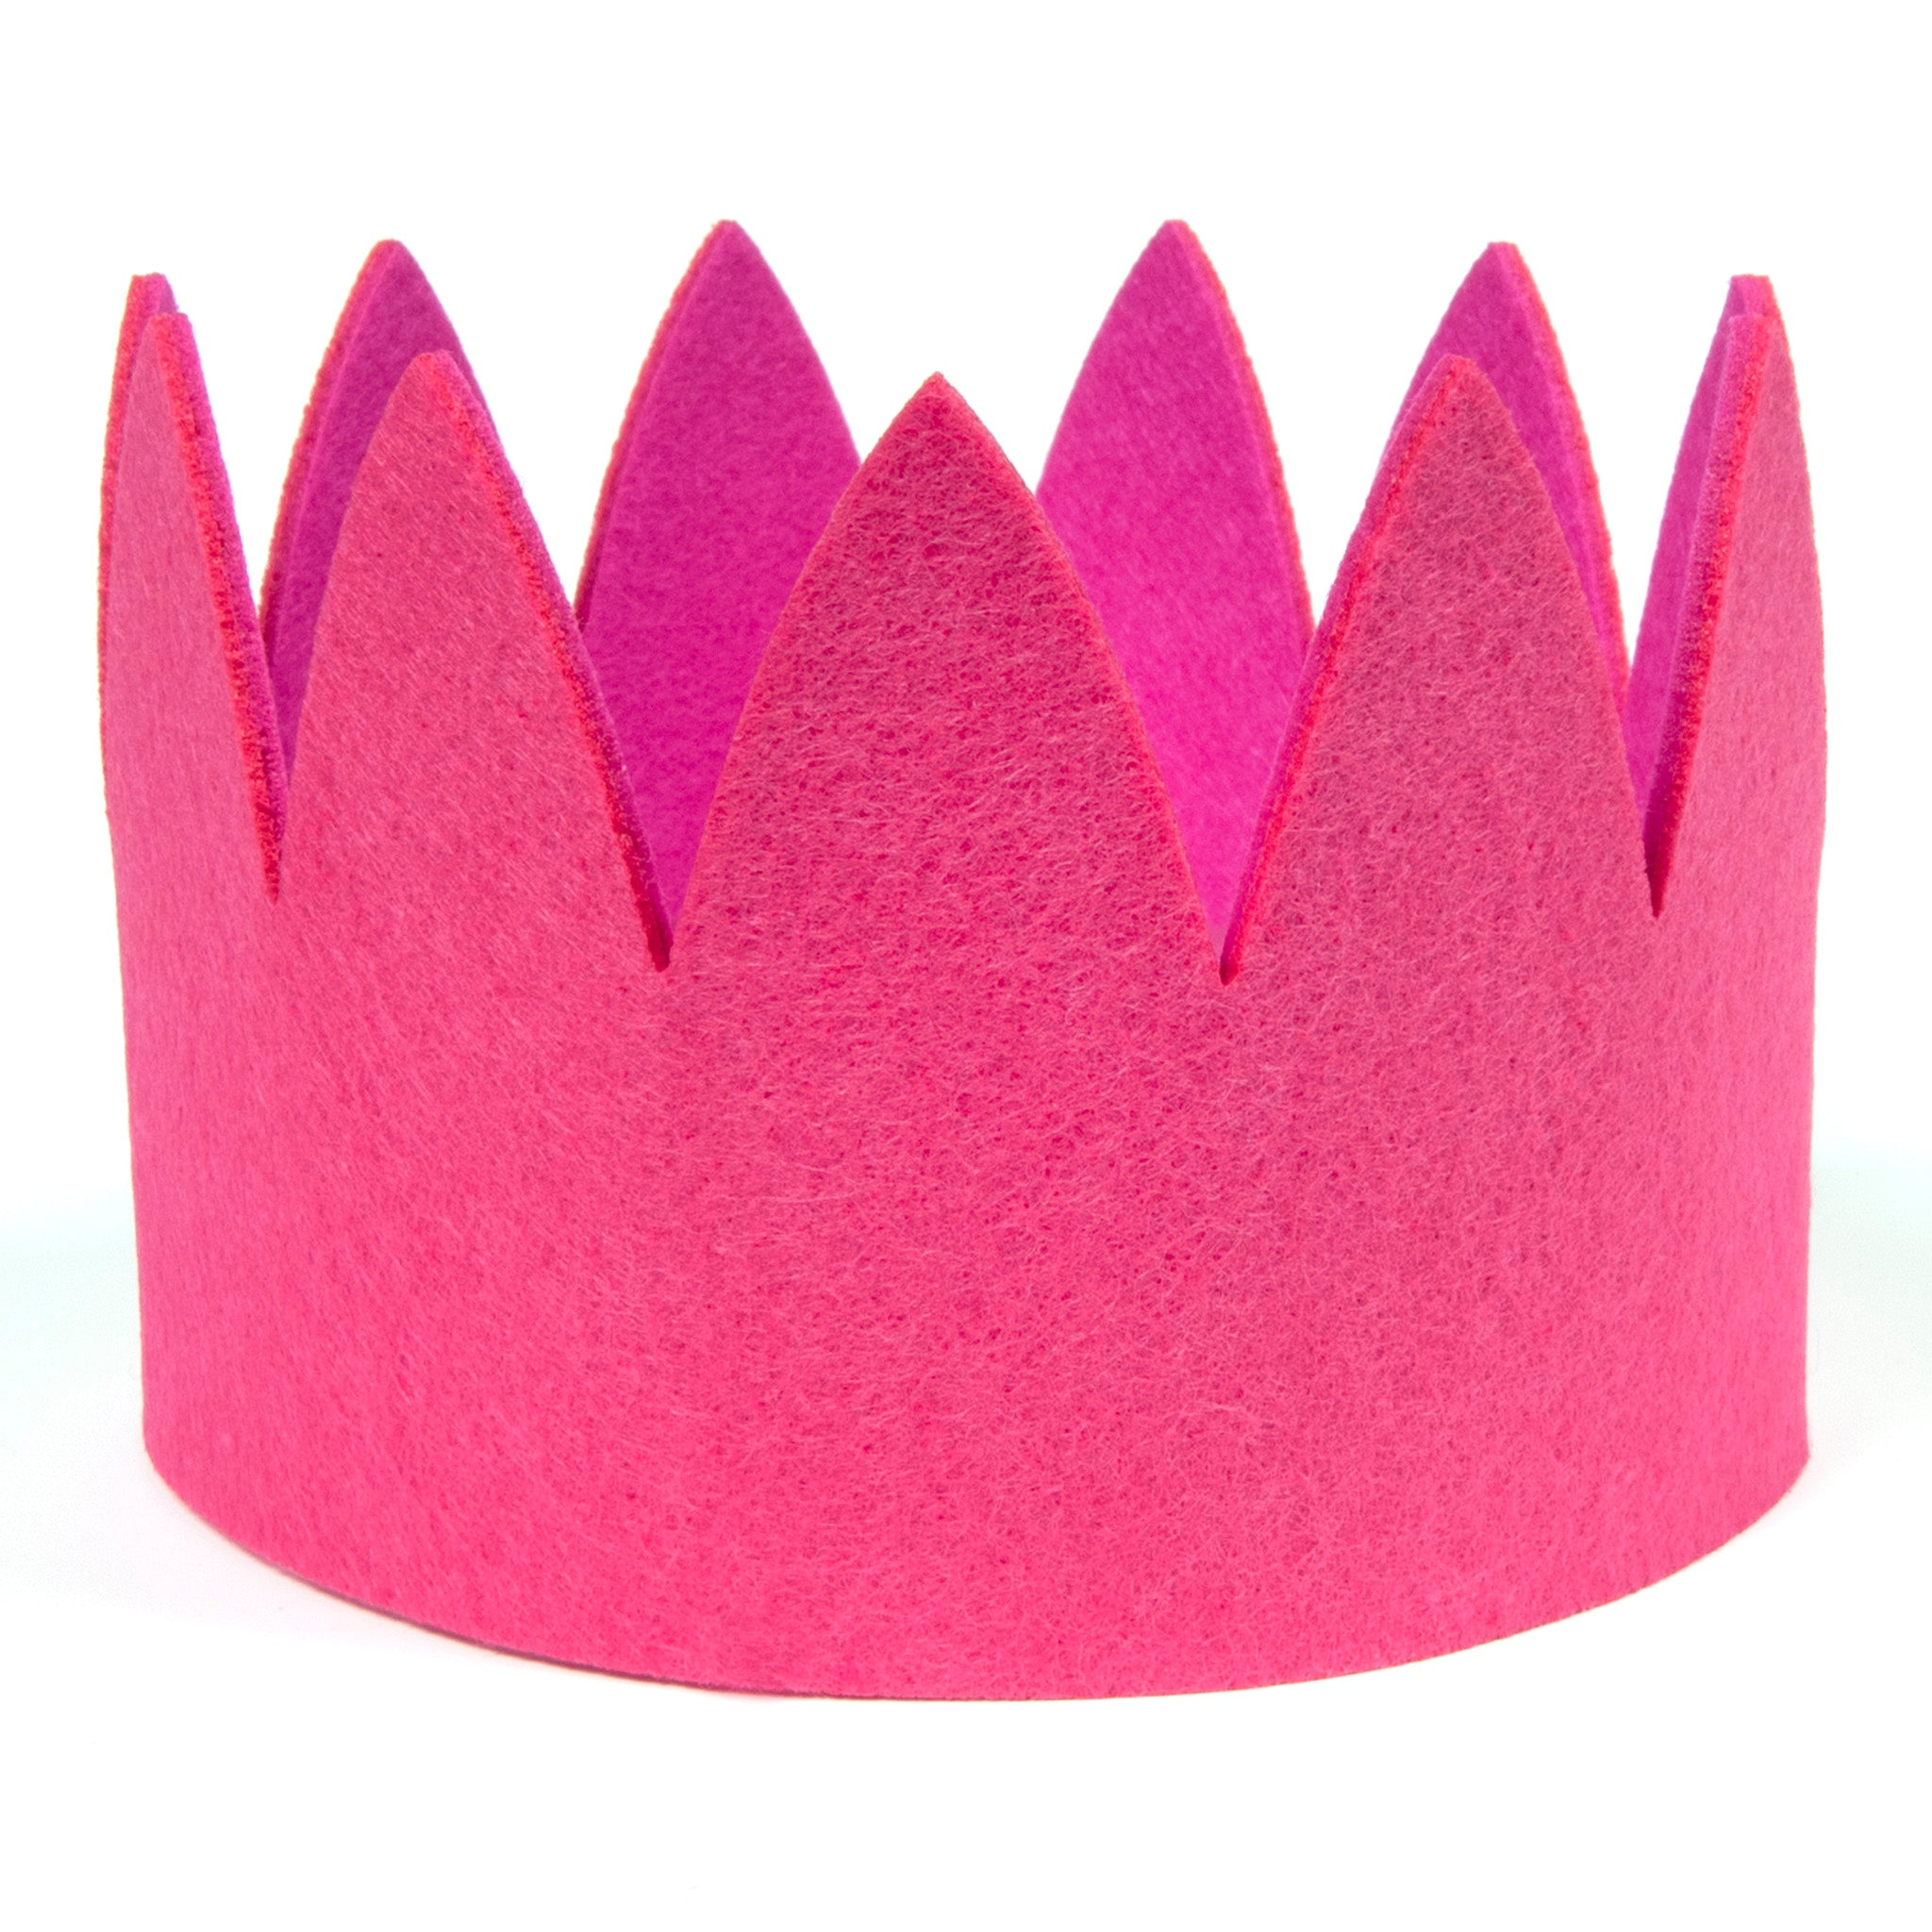 Felt Crown Image